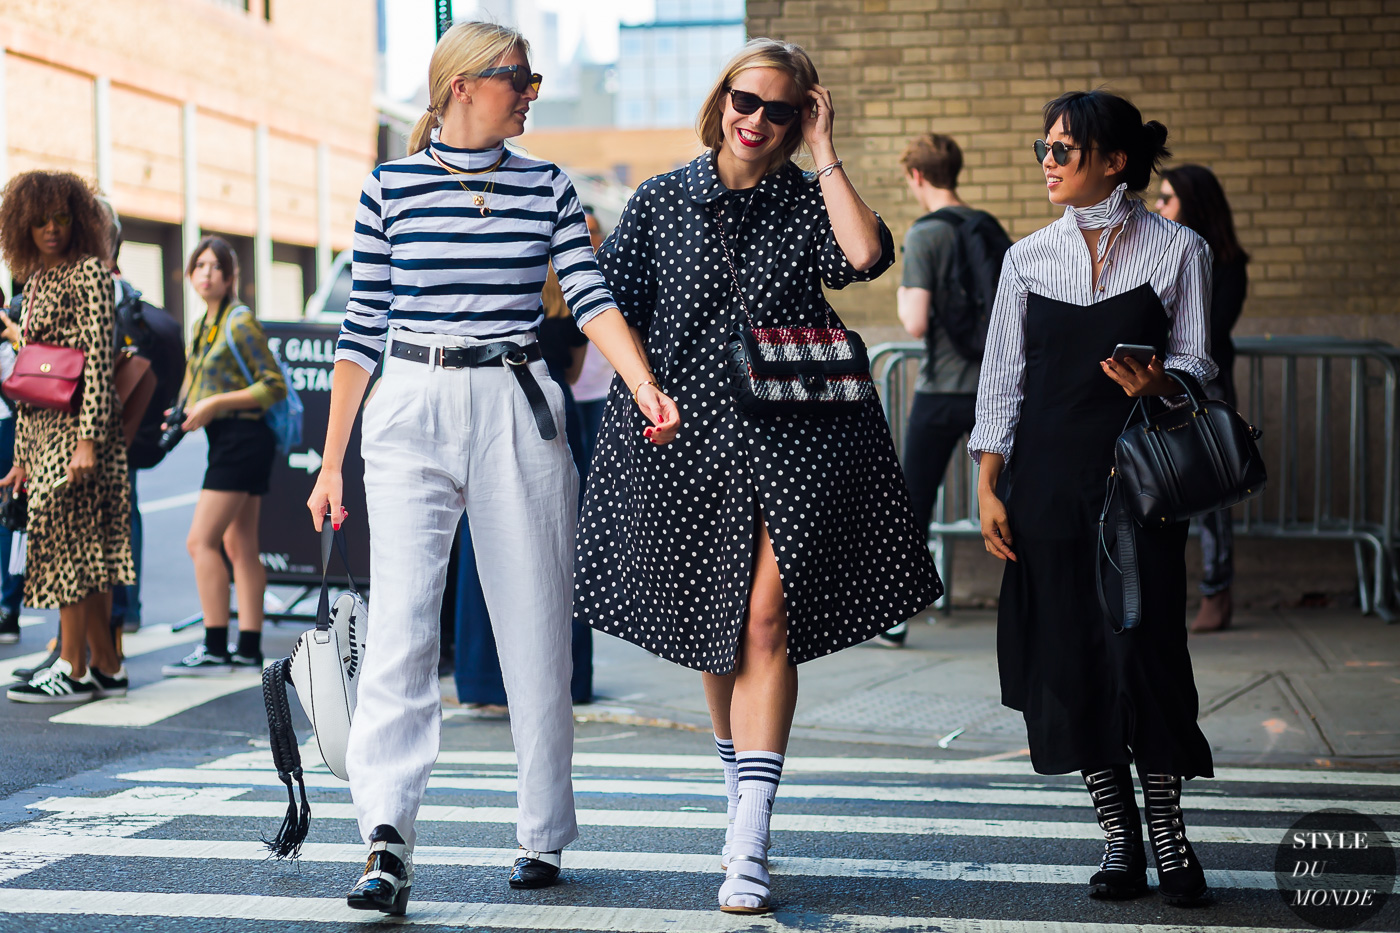 Camille Charriere Chloe Hill Margaret Zhang by STYLEDUMONDE Street Style Fashion Photography0E2A7186